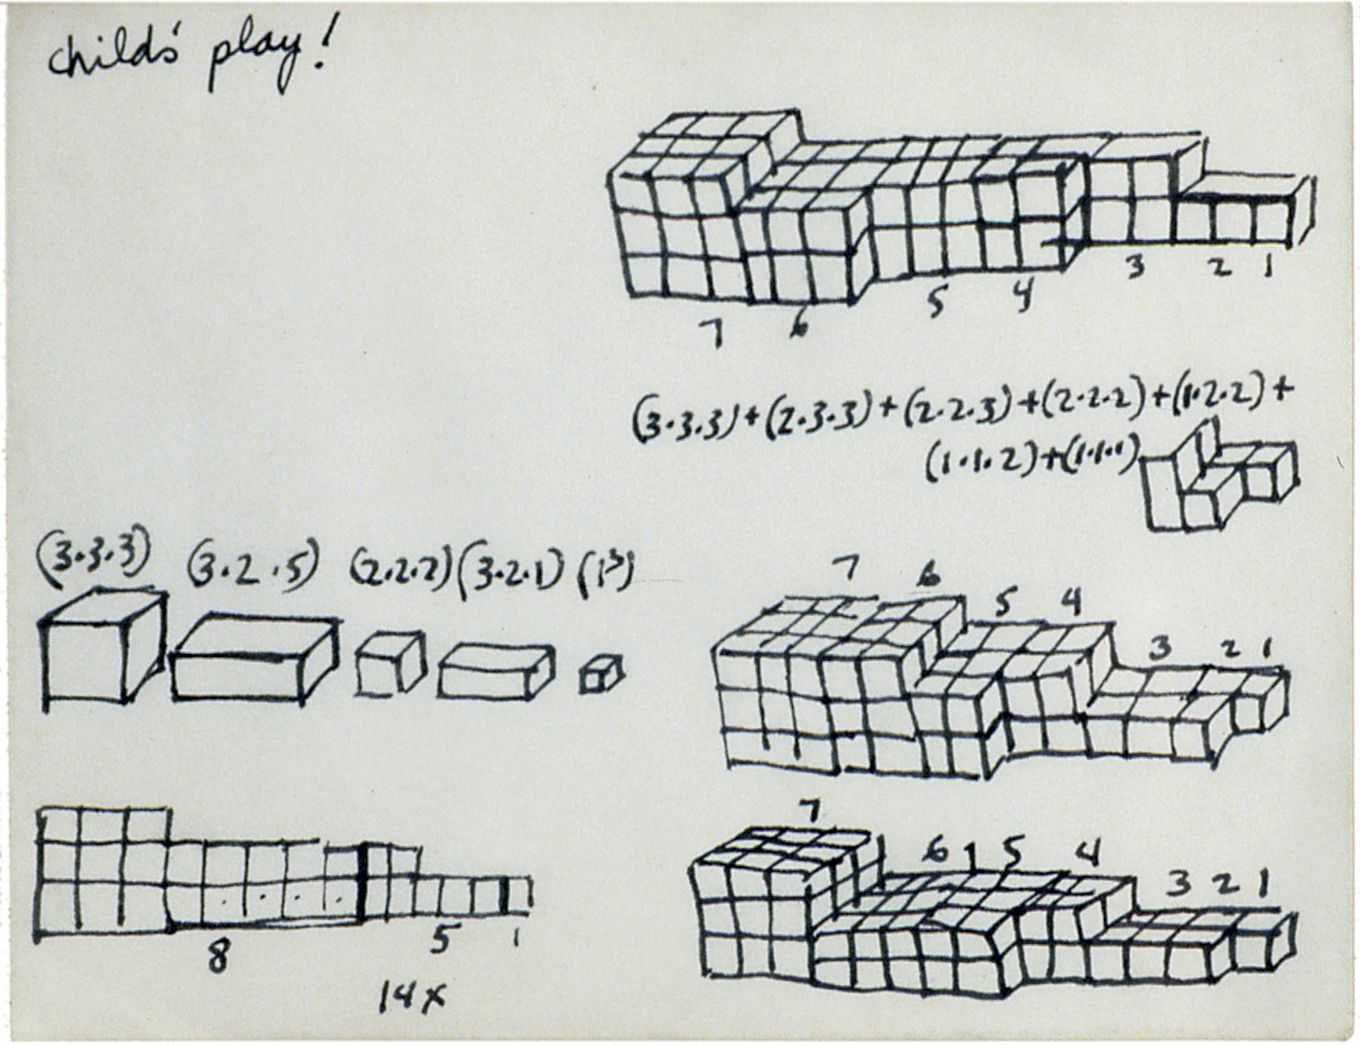 """Mel Bochner,Untitled (""""Child's Play!"""": Study for 7-Part Progression), 1966. Ink on paper, 5 2/3 x 7 inches."""